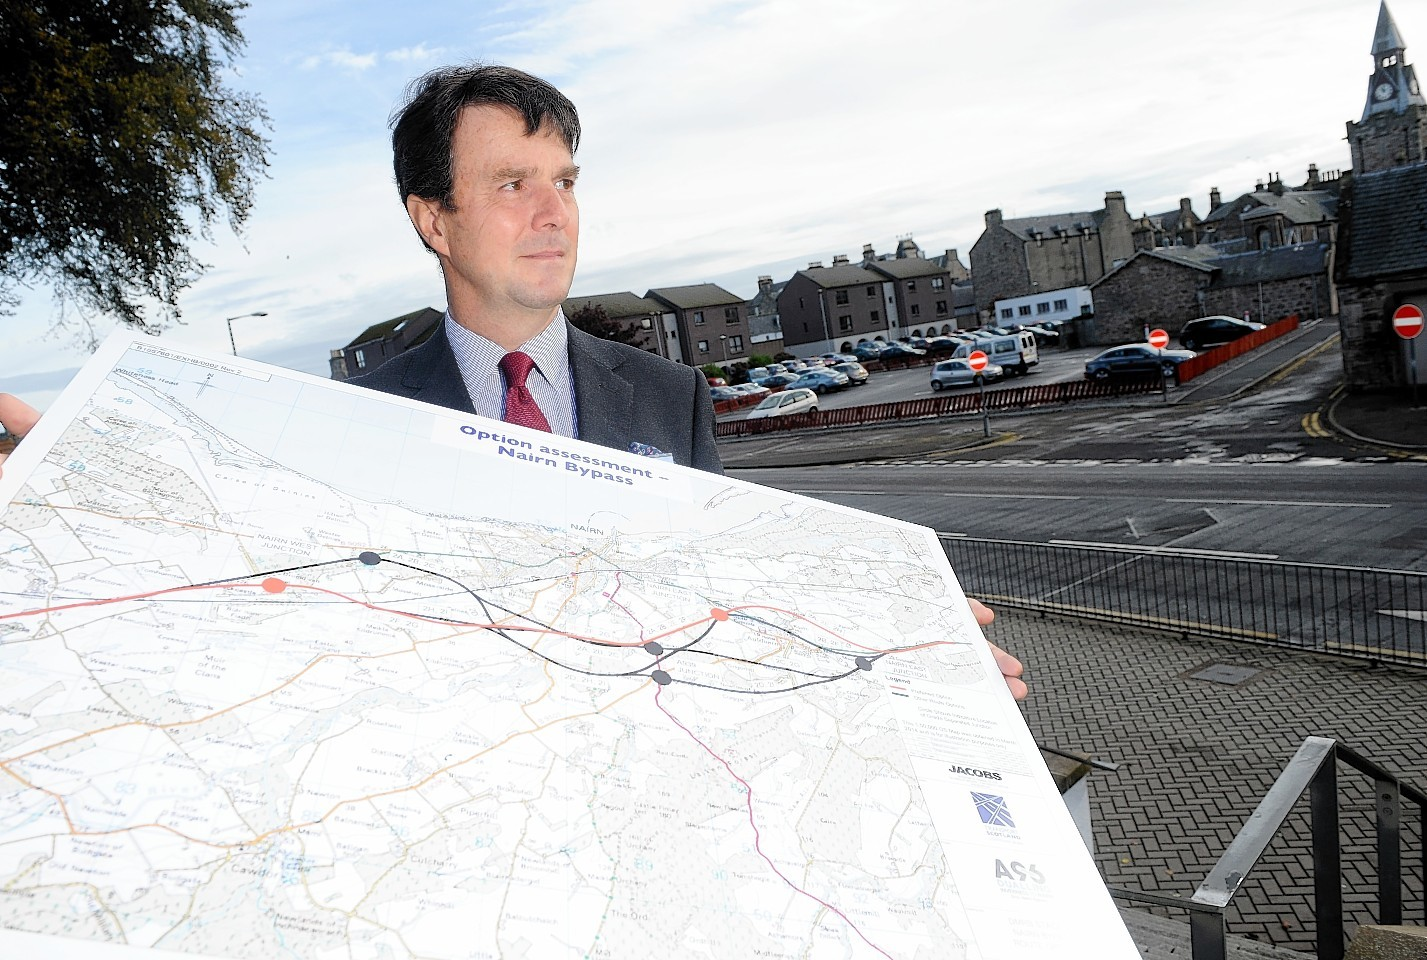 Transport Scotland's head of planning David Anderson shows the plans for Nairn.